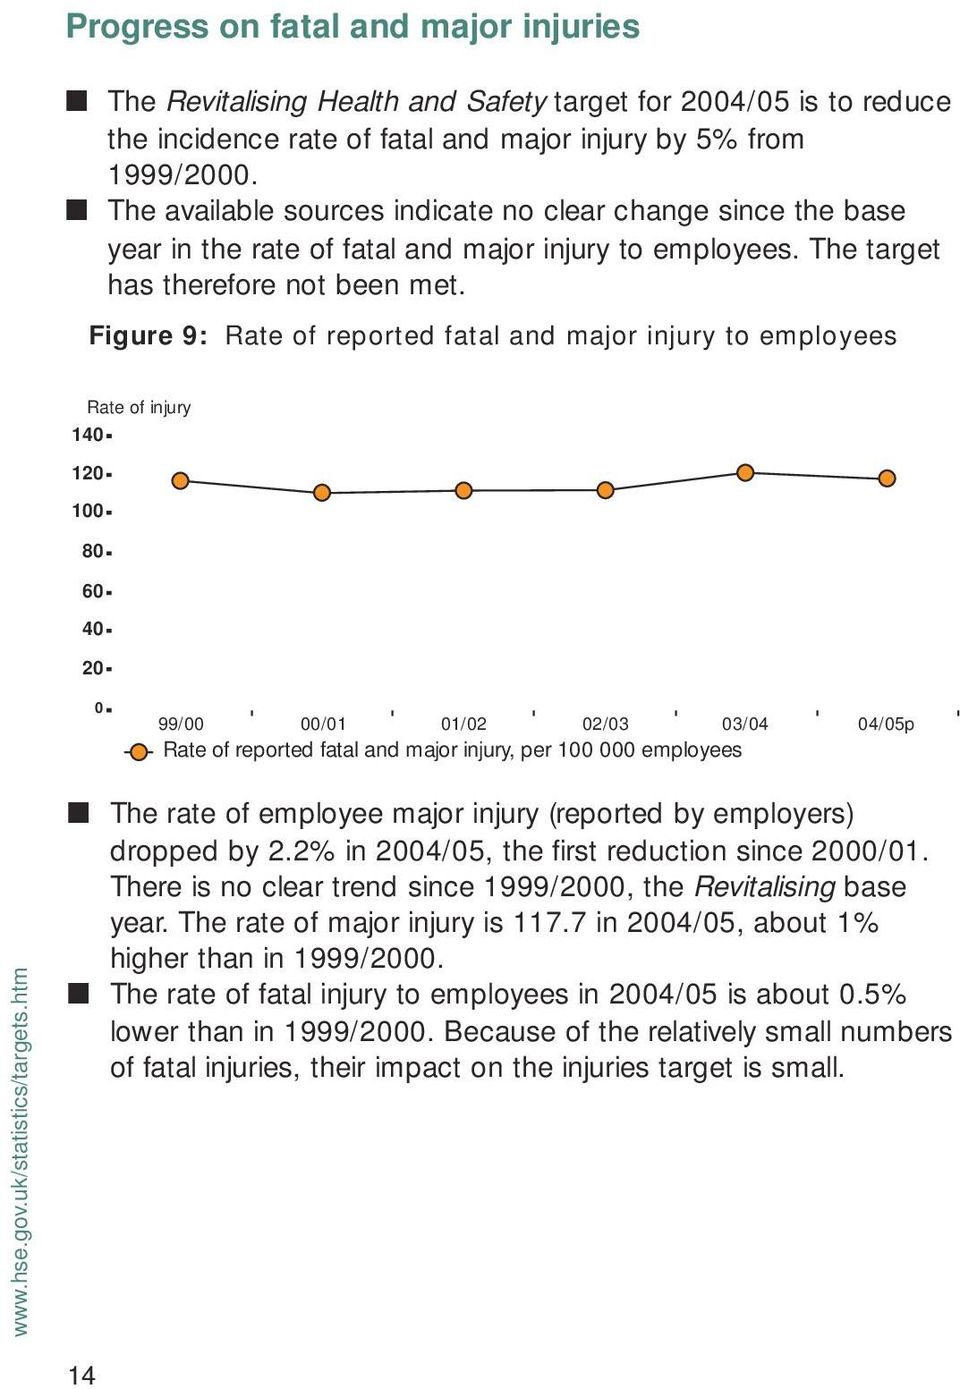 Figure 9: Rate of reported fatal and major injury to employees Rate of injury 140 120 100 80 60 40 20 0 99/00 00/01 01/02 02/03 03/04 04/05p Rate of reported fatal and major injury, per 100 000